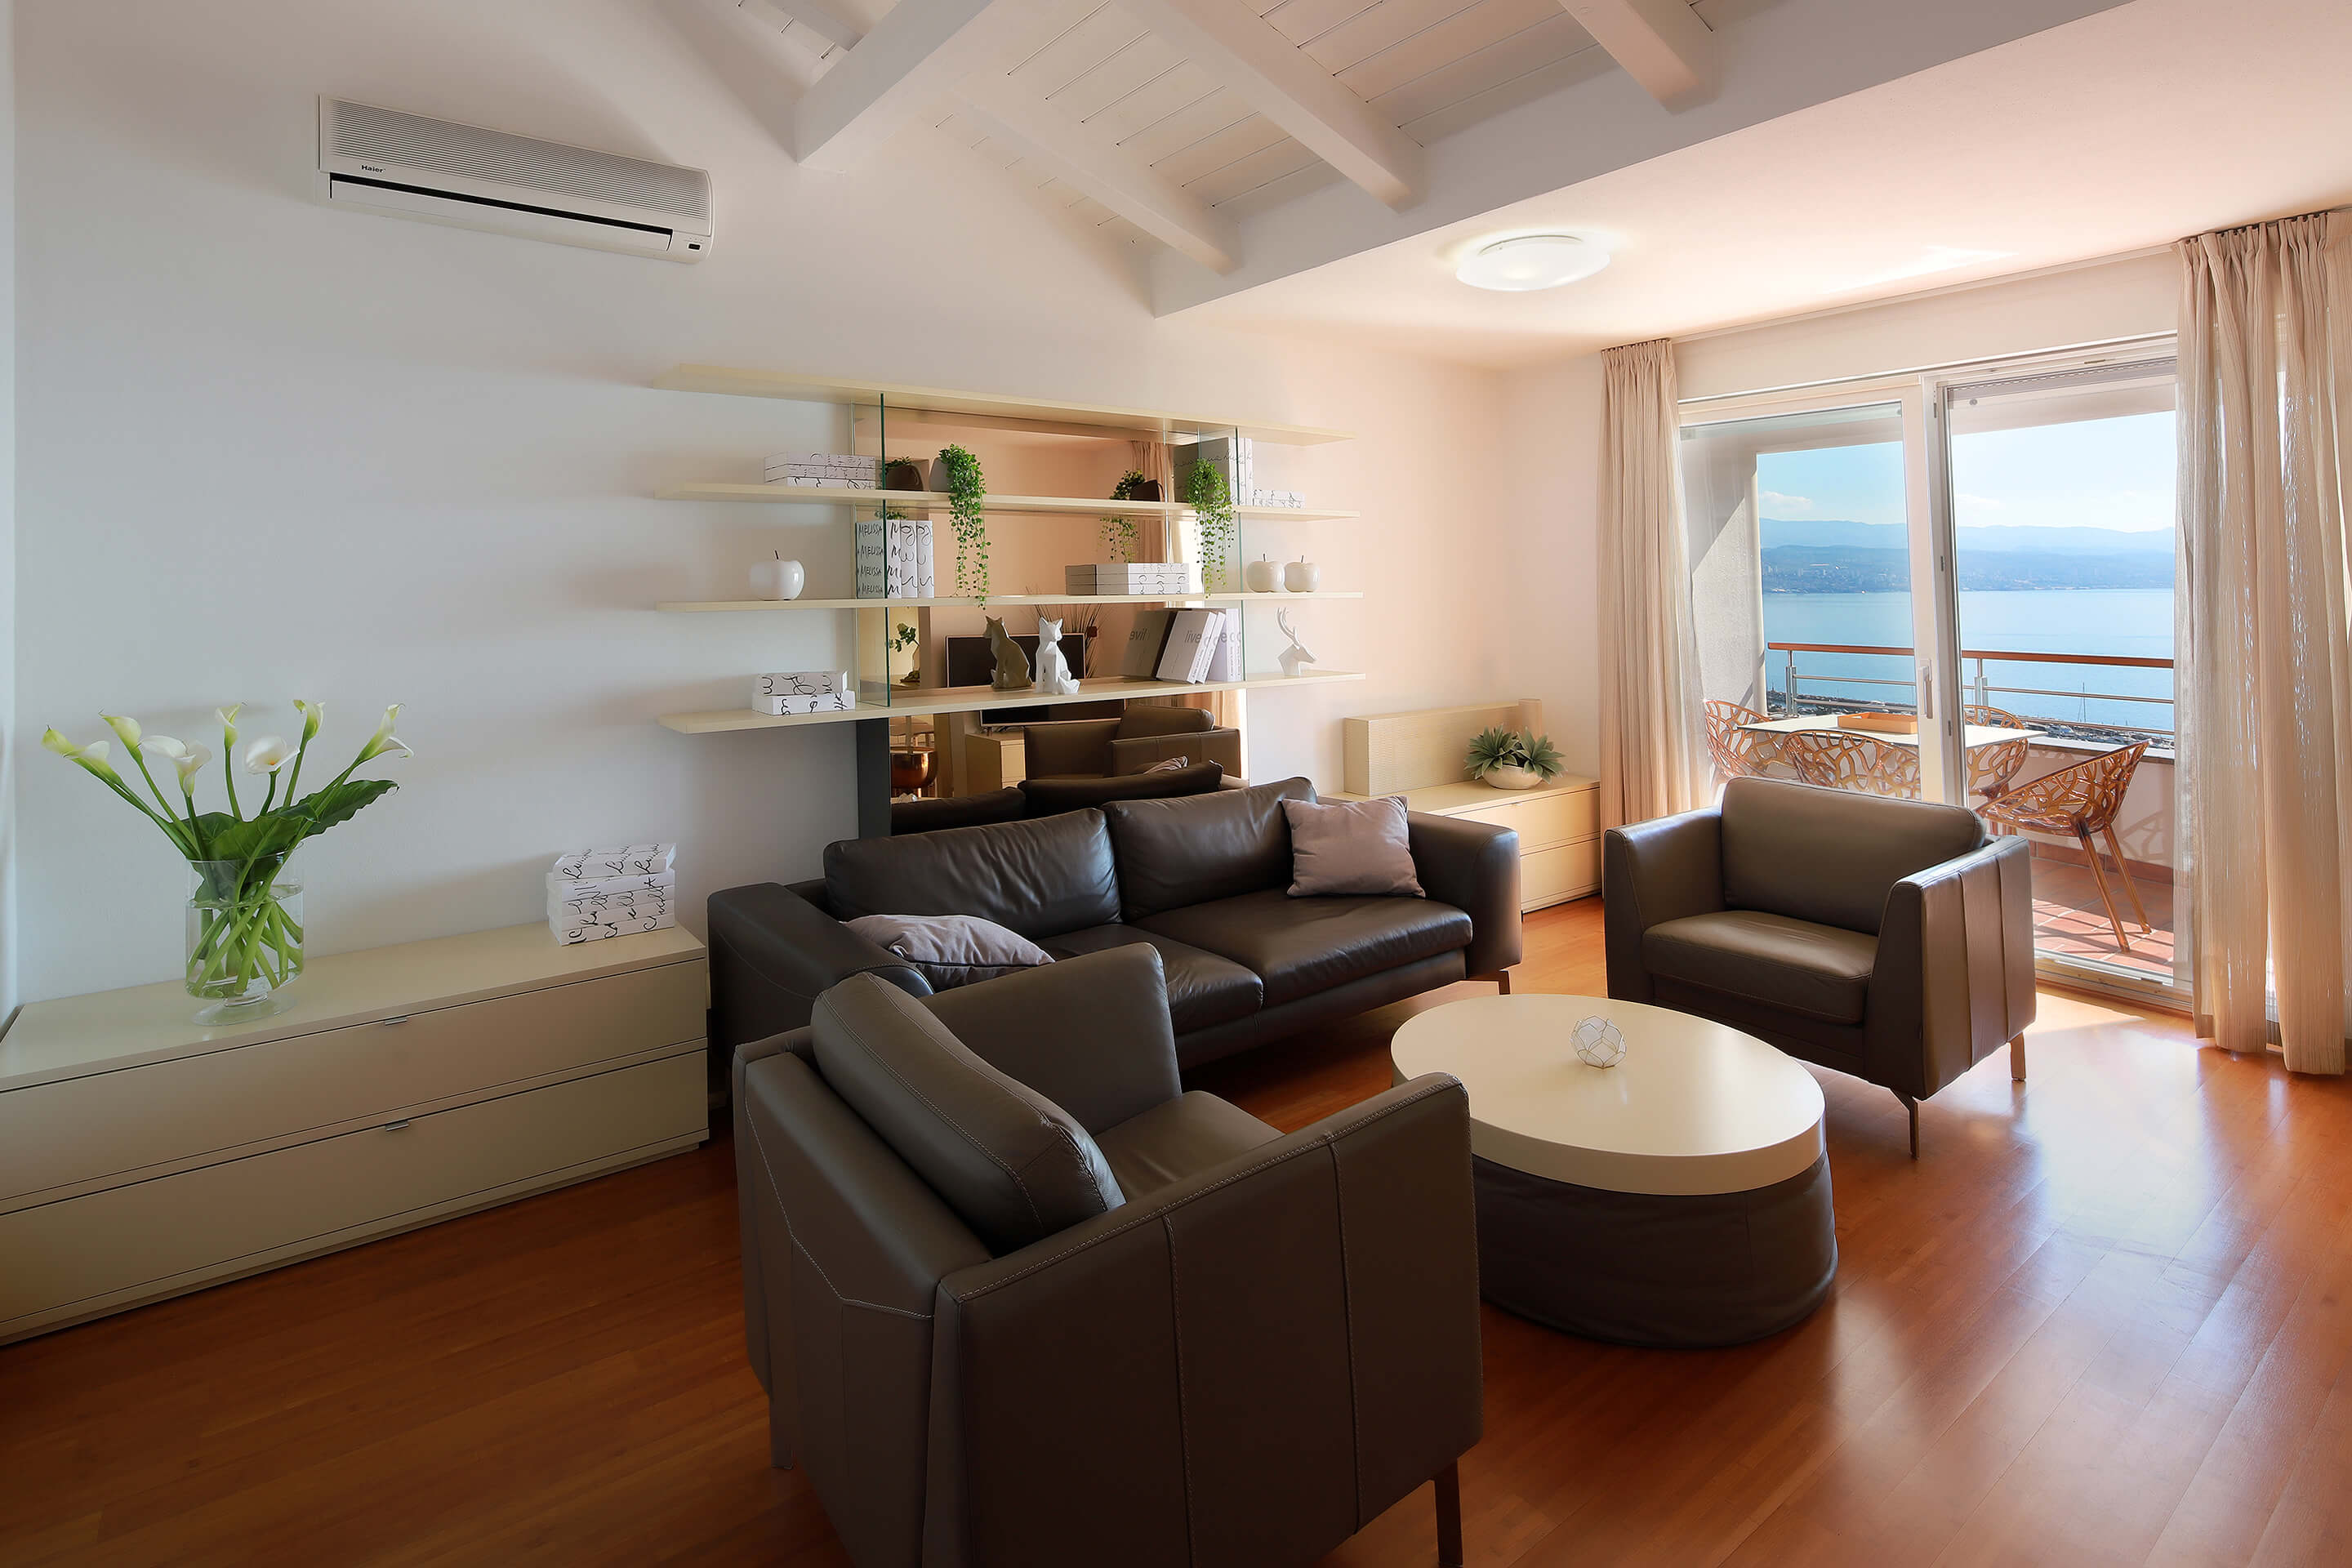 A5 - new luxury - living room - balcony - sea view - decorations